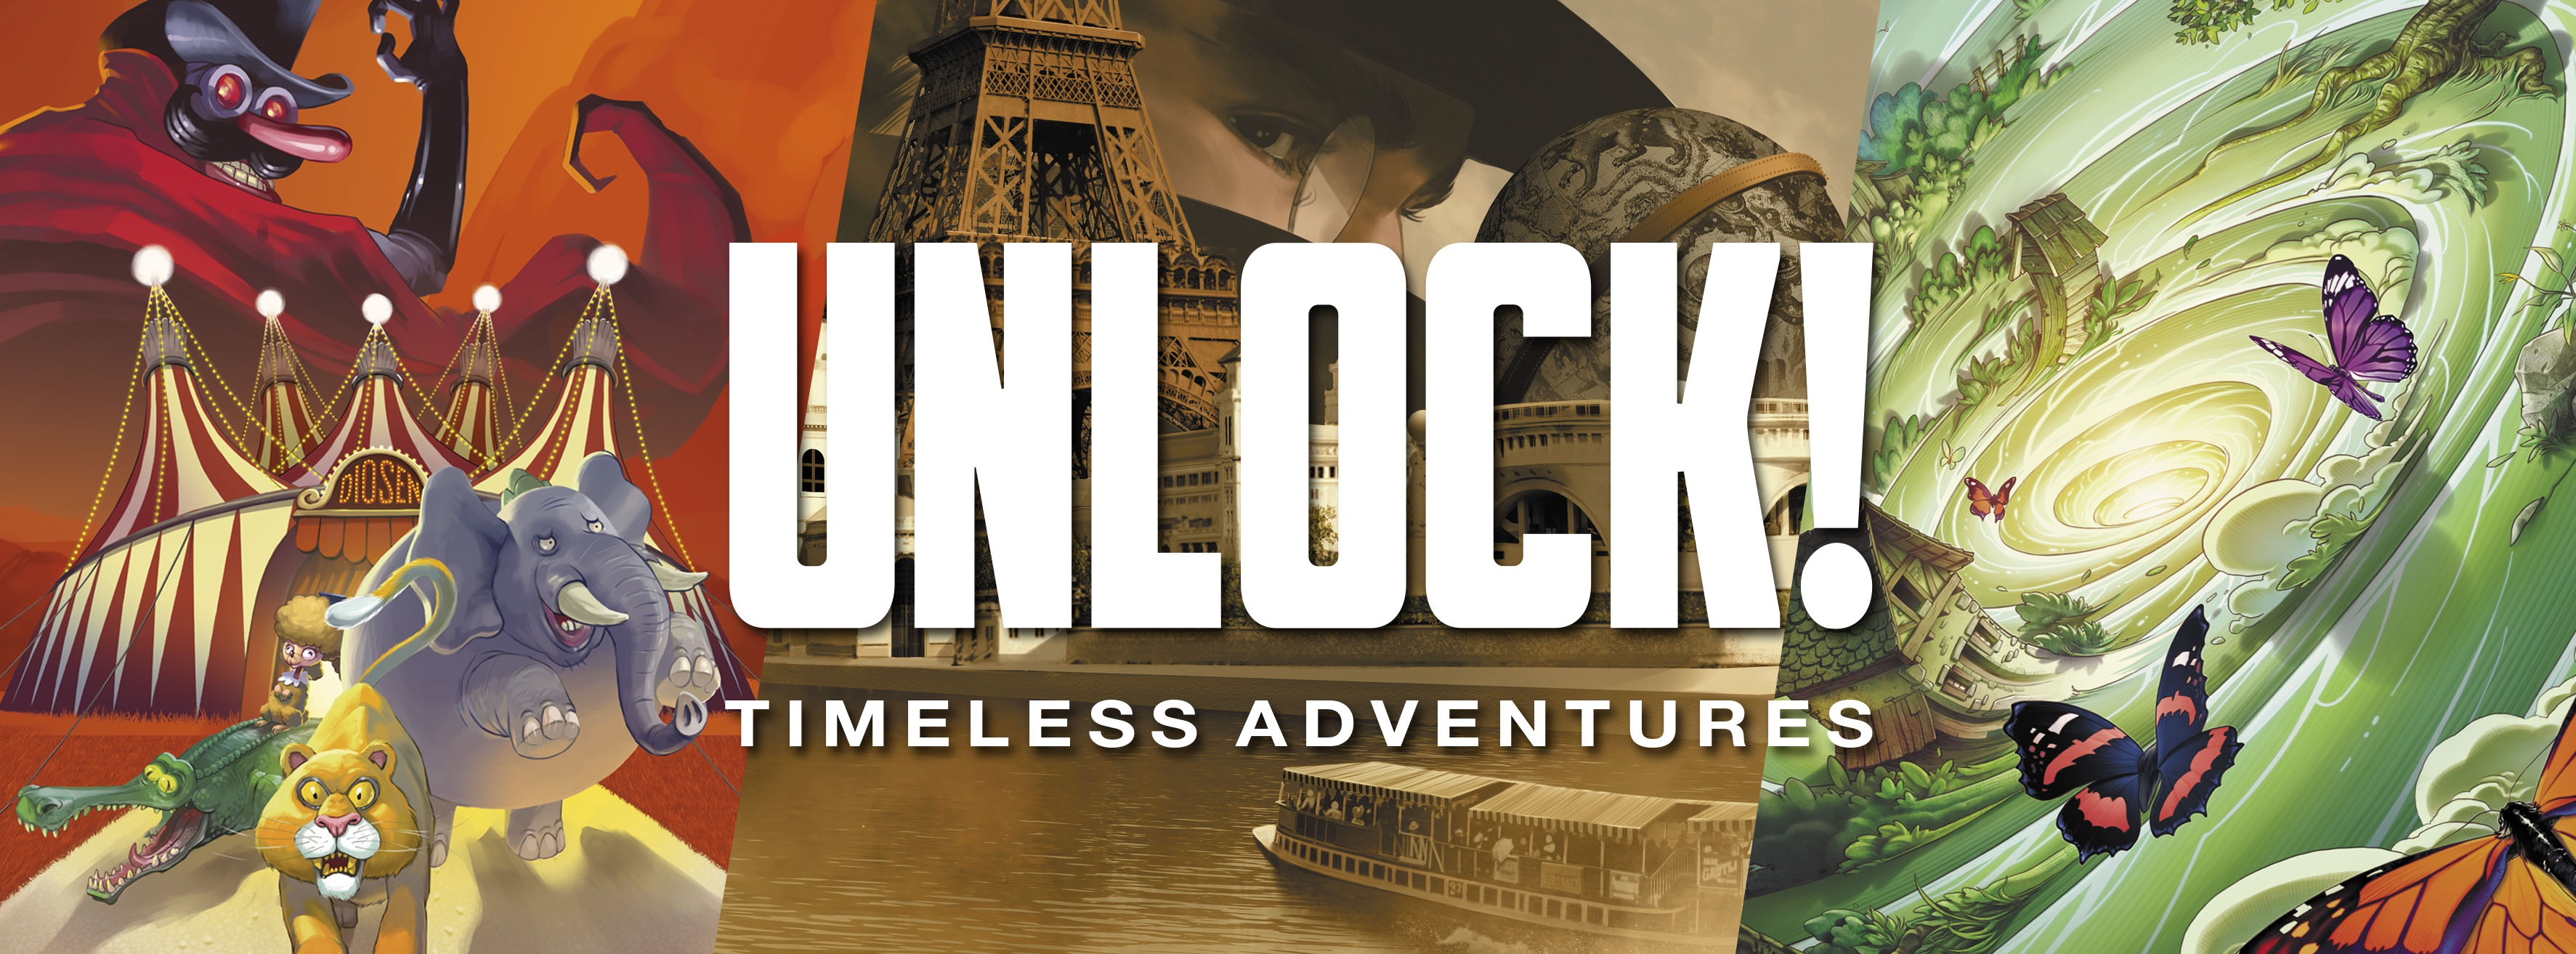 Unlock! Timeless Adventures arrive